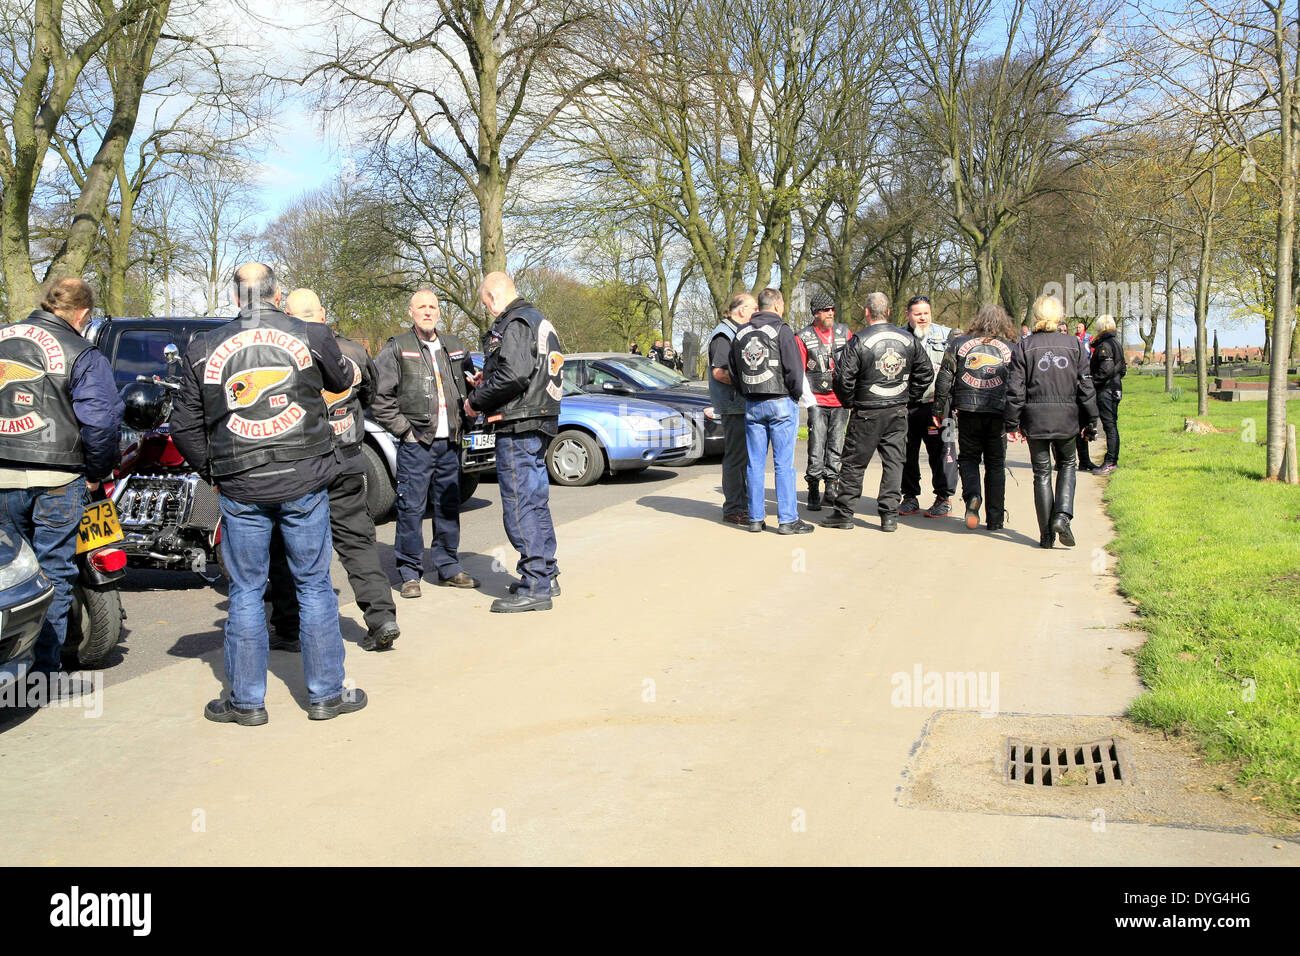 Large numbers of Hells Angels meet to pay respects at the funeral of a chepter president. - Stock Image